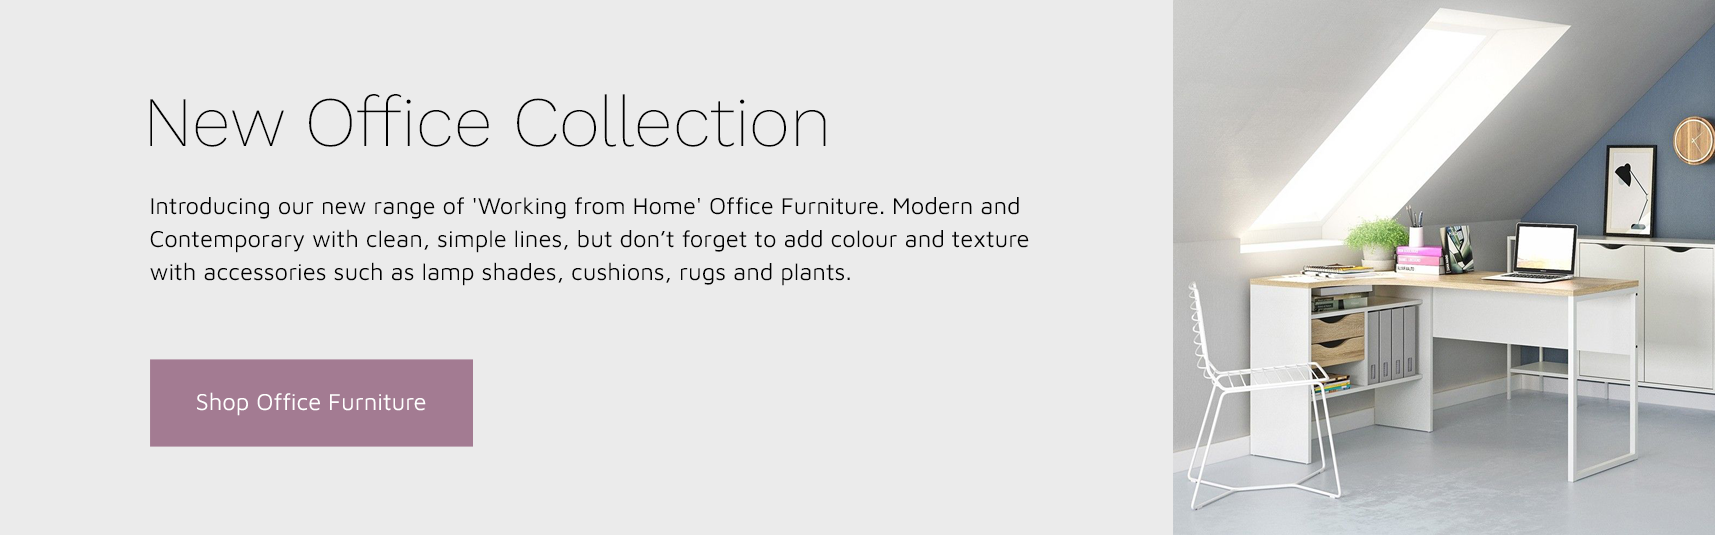 Shop Office Furniture collection